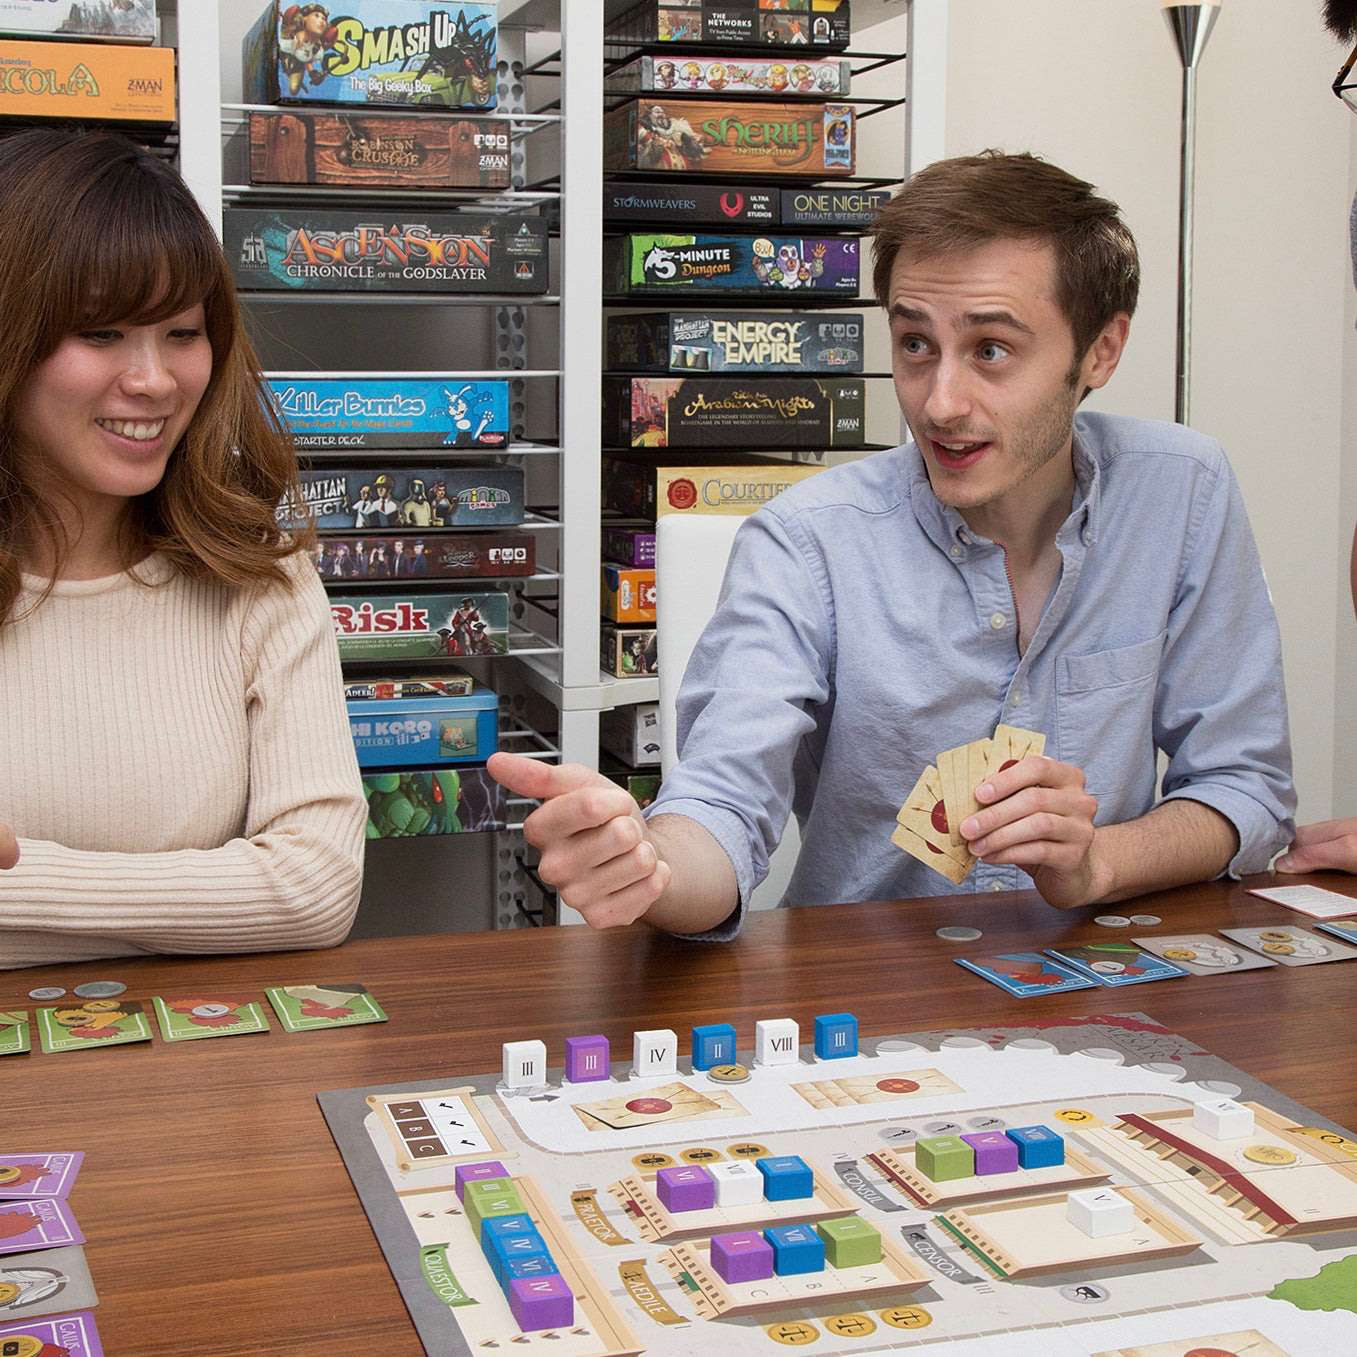 Dan Blacklock, founder of BoxThrone playing a board game with friends.